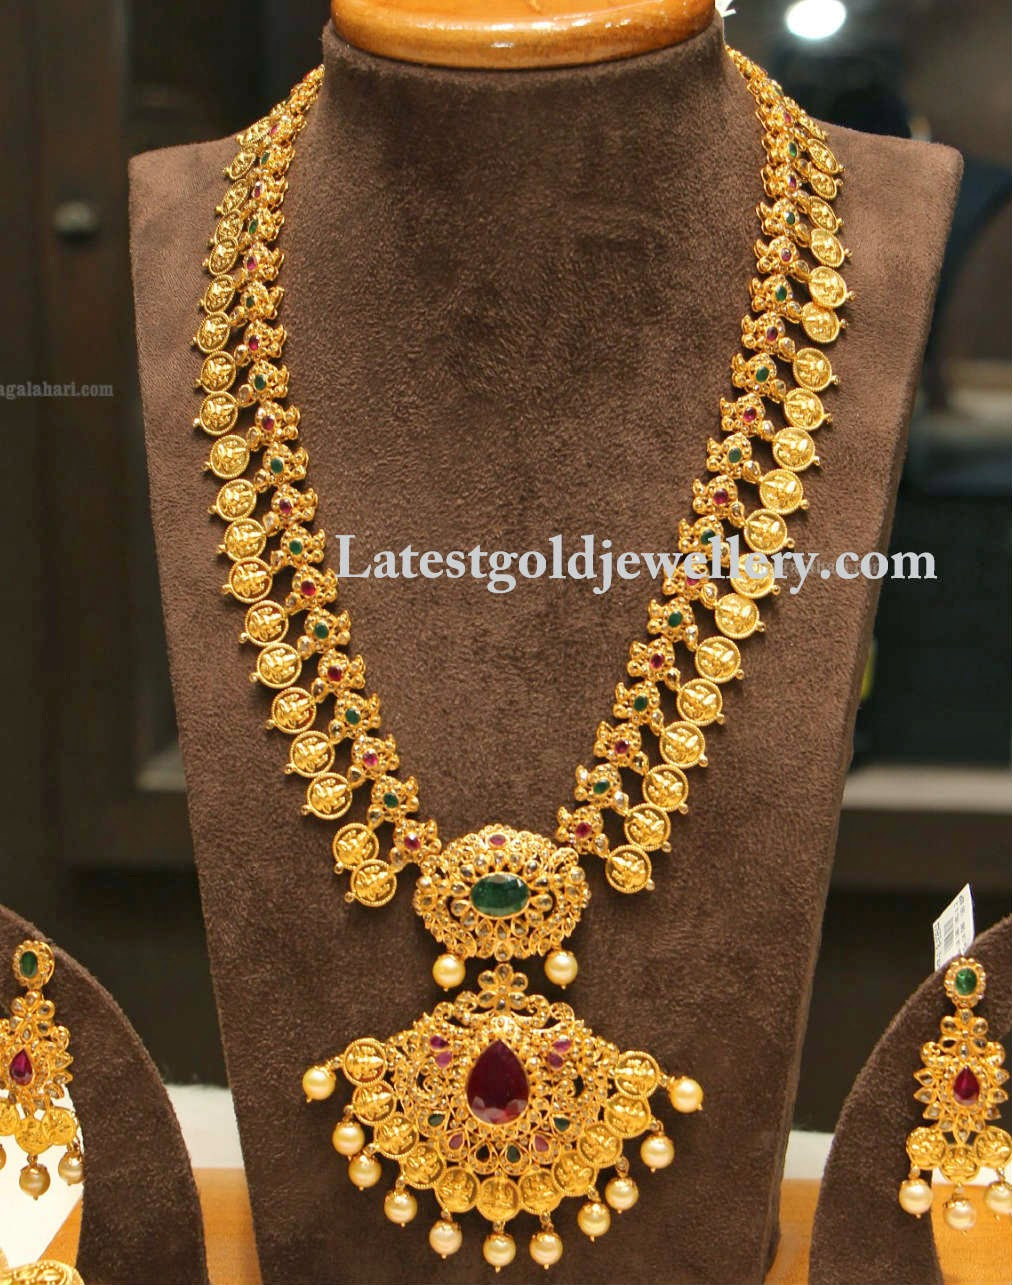 Latest Gold Jewellery Designs: Gold Long Chains